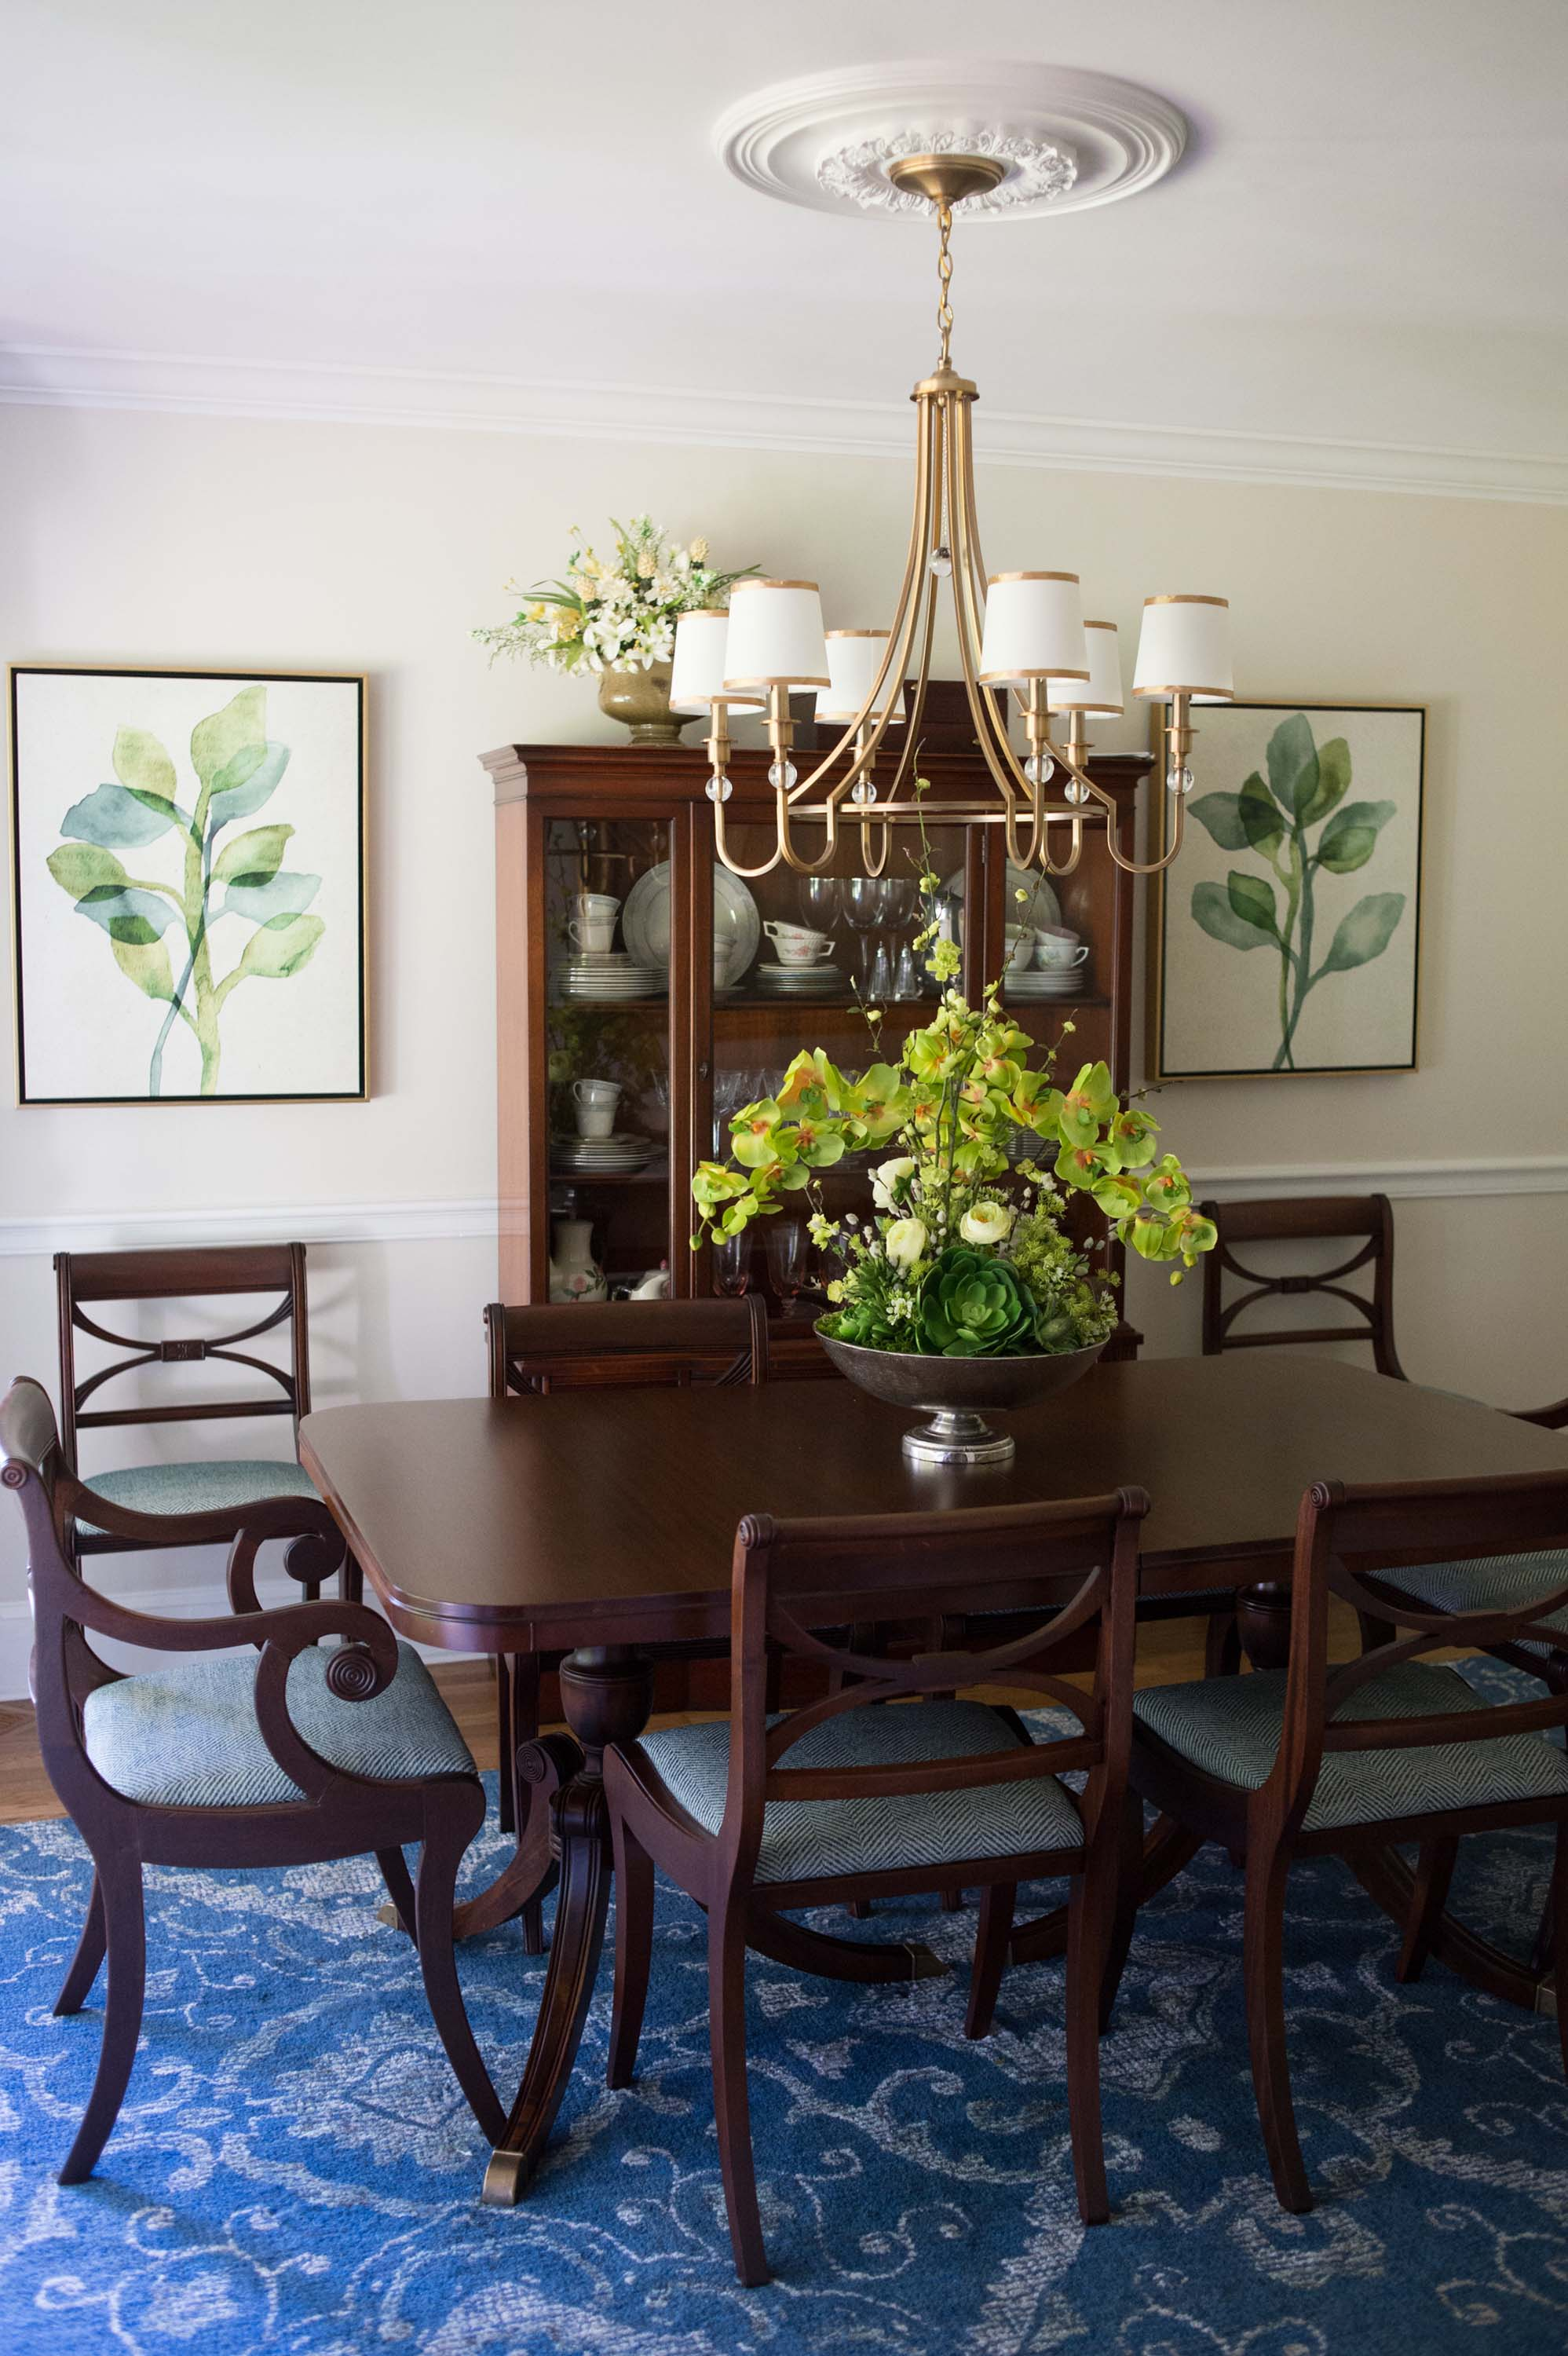 Dining room with wooden table, chairs, cabinet and chandelier